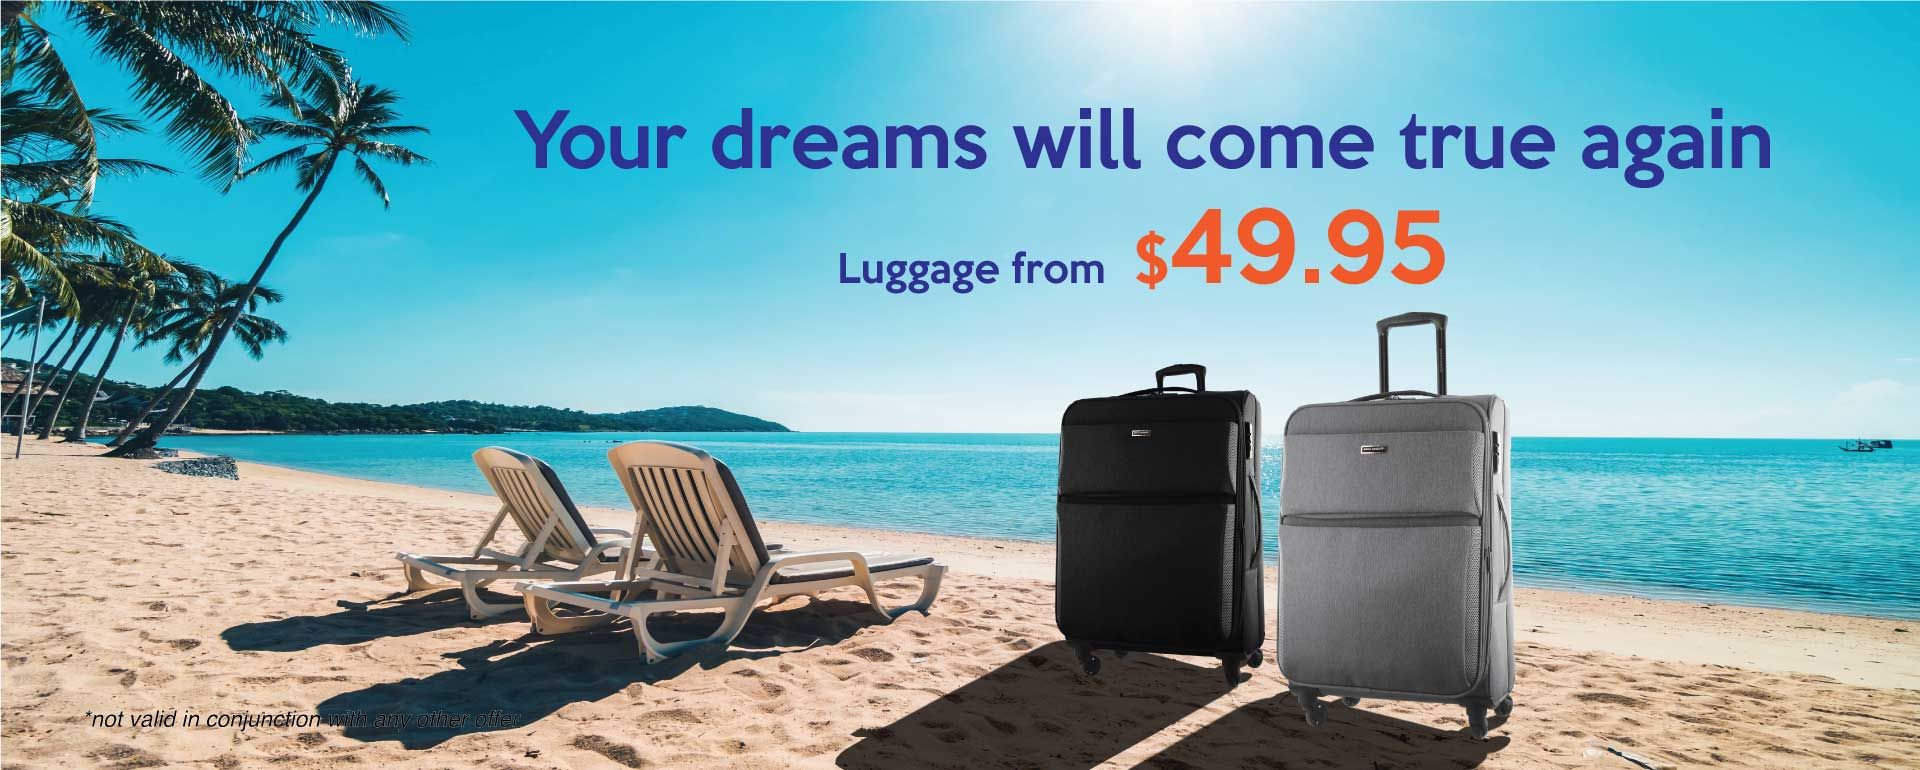 luggage-promo-your-dreams-will-come-true-banner.jpg